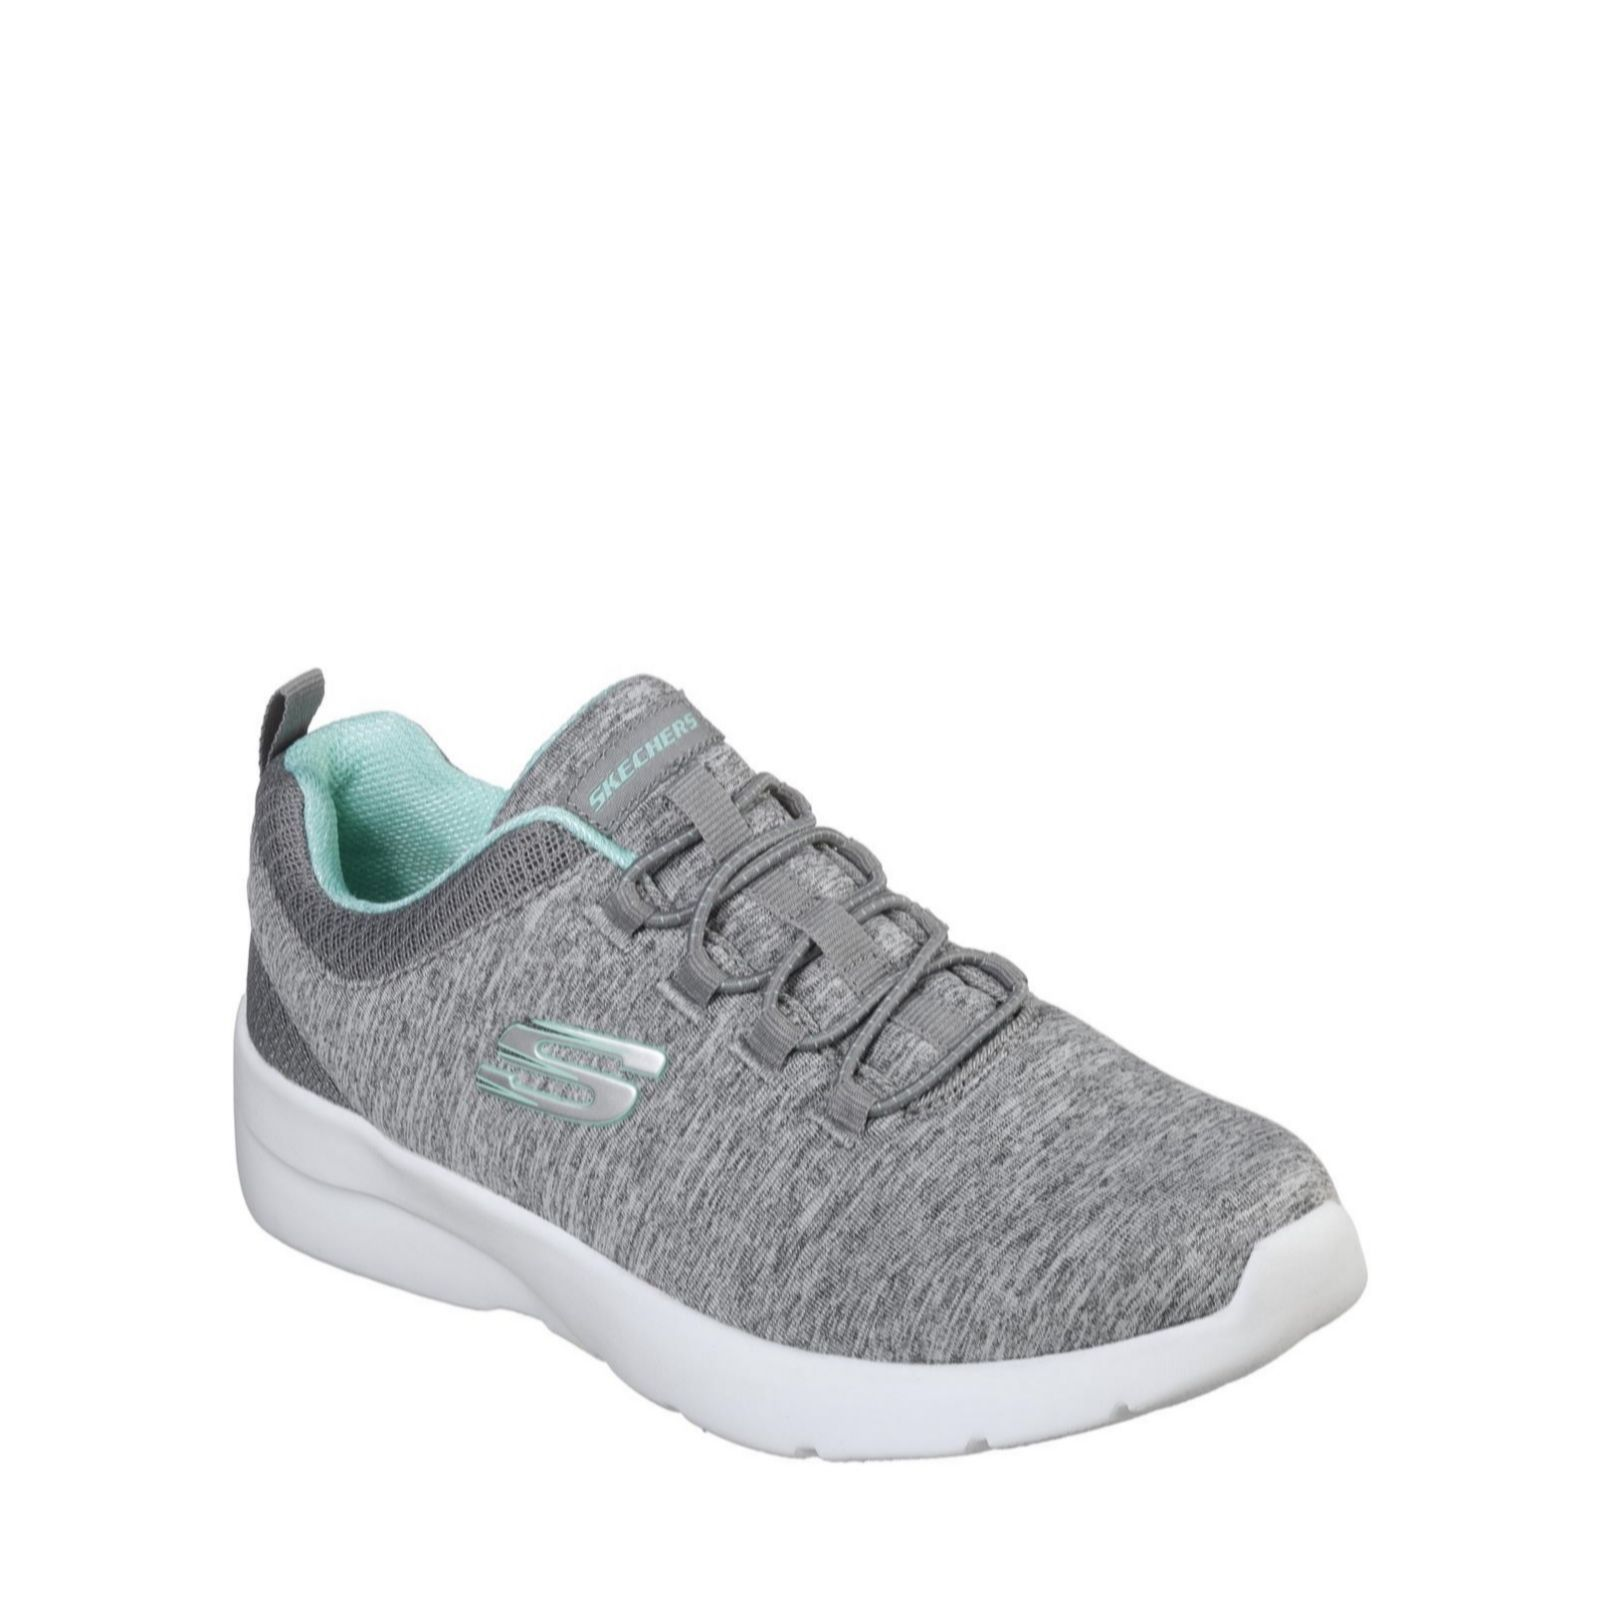 skechers outlet uk